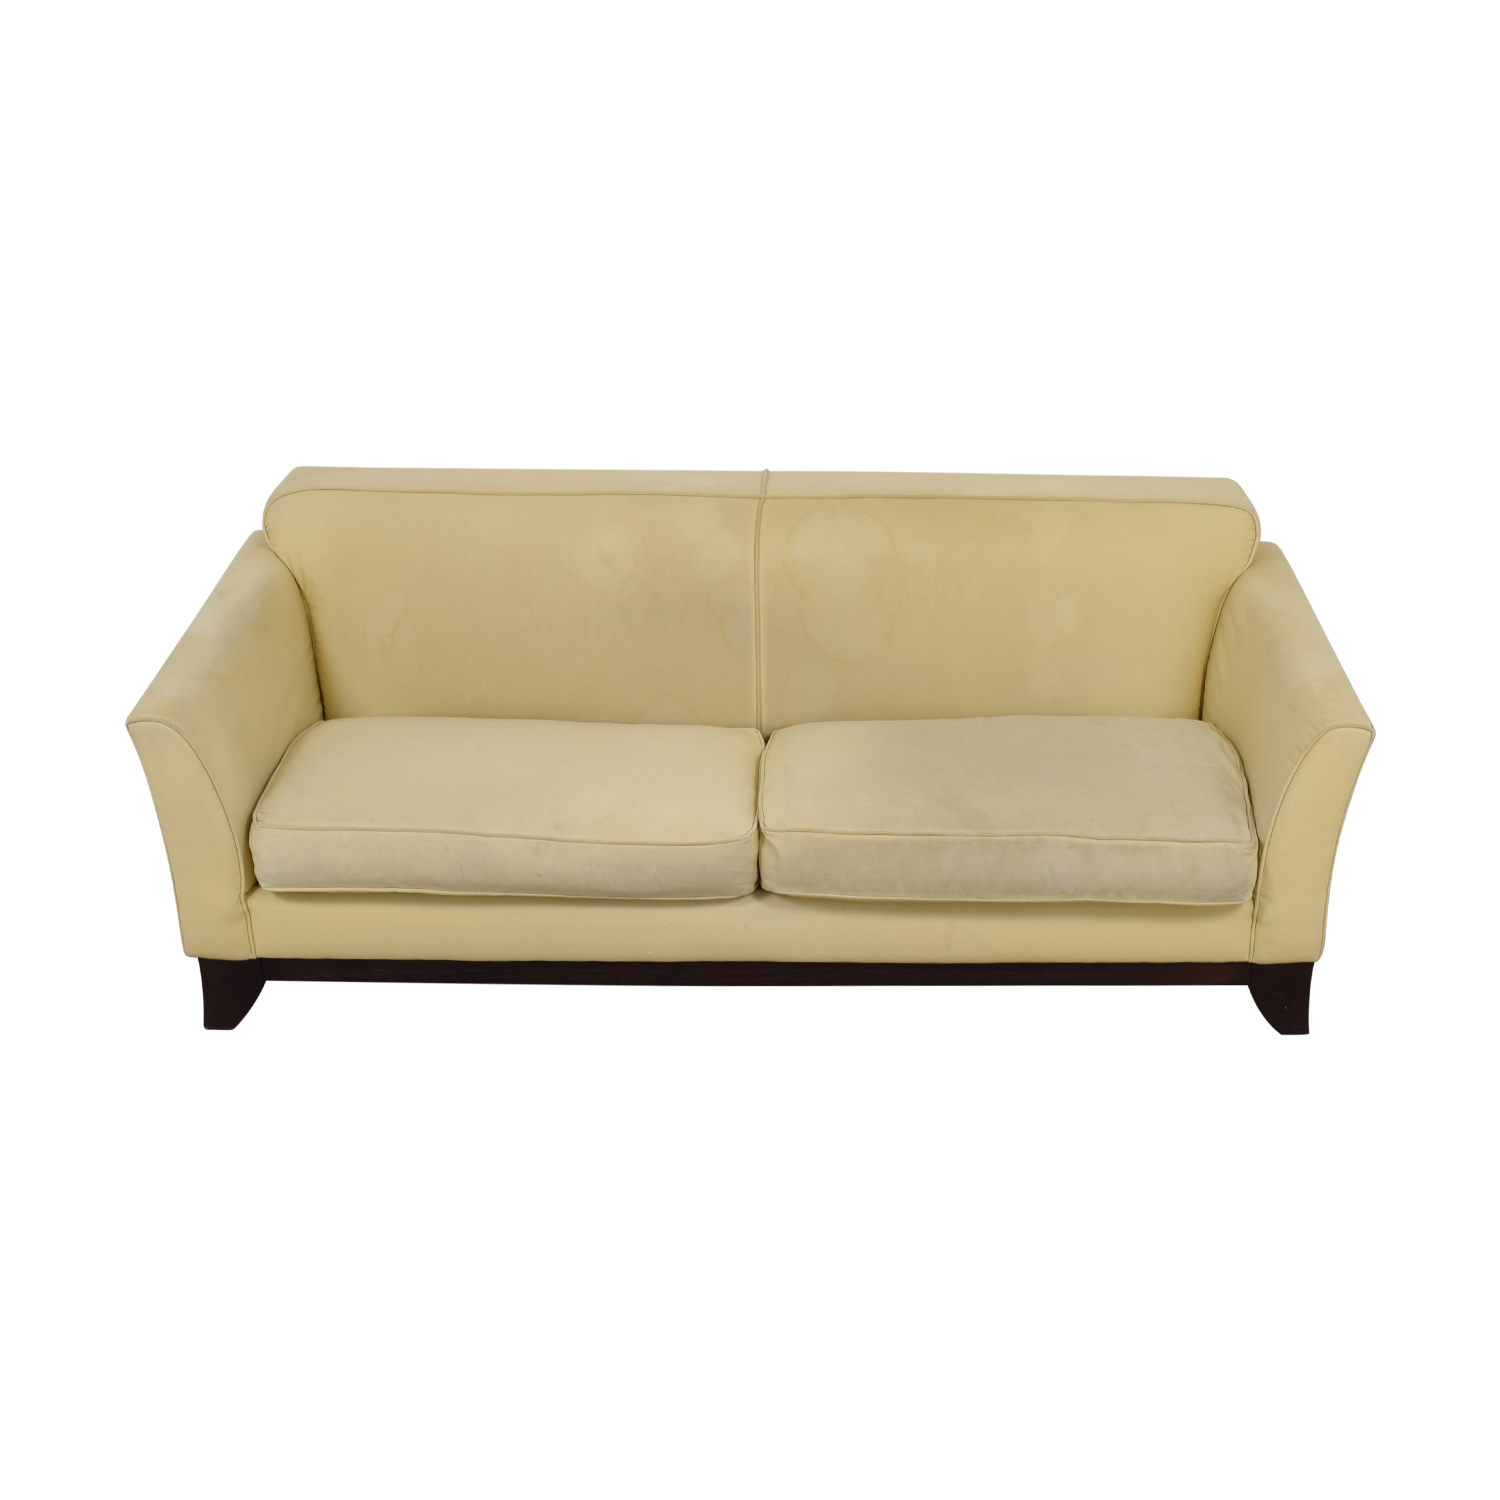 italian shelter arm sofa chesterfield leather uk couch beige awesome alturo chaise with